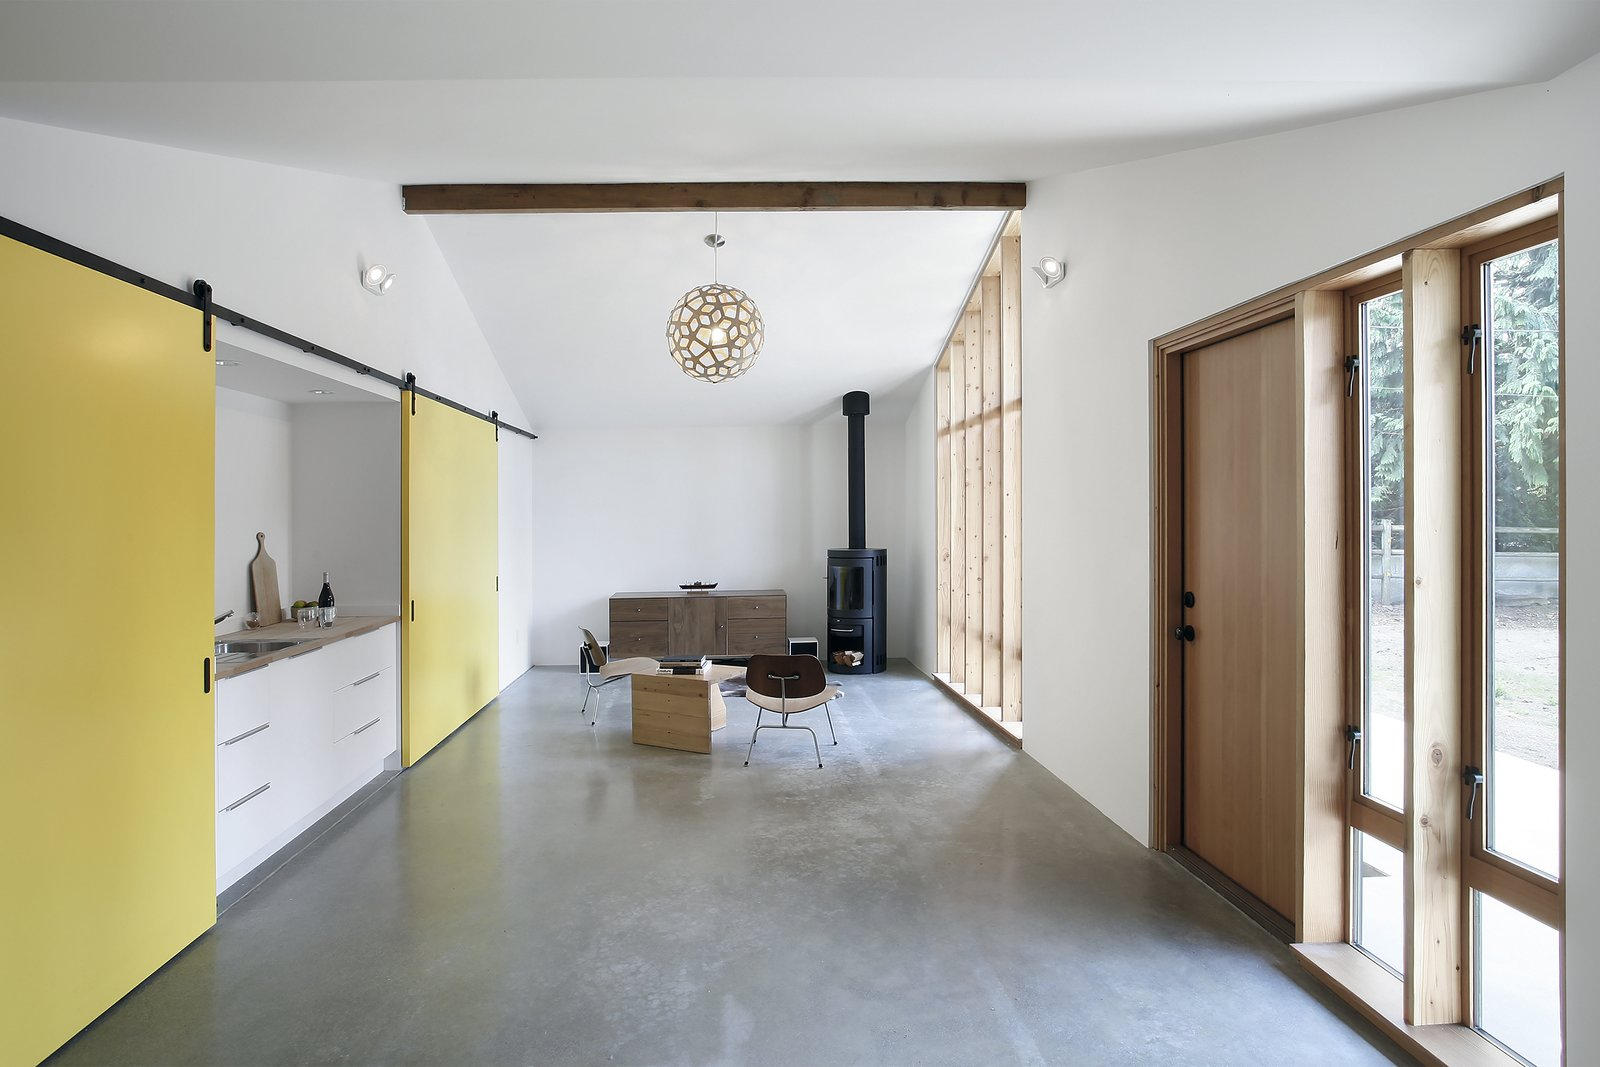 To evoke the structure's past as a horse stable, and provide options for the use of the space, Schaer and his team employed Sing Core sliding barn doors mounted on Krownlab's Axel hardware. The sliding track runs the full width of the building, allowing residents to open or conceal a bedroom, kitchenette, and entrance to an adjacent 530 square-foot garage, all depending on how the spaces are being used. The kitchenette, seen left, features a Kraus sink and a chrome Grohe Concetto faucet.  Horse Stable Studio by Kelly Dawson